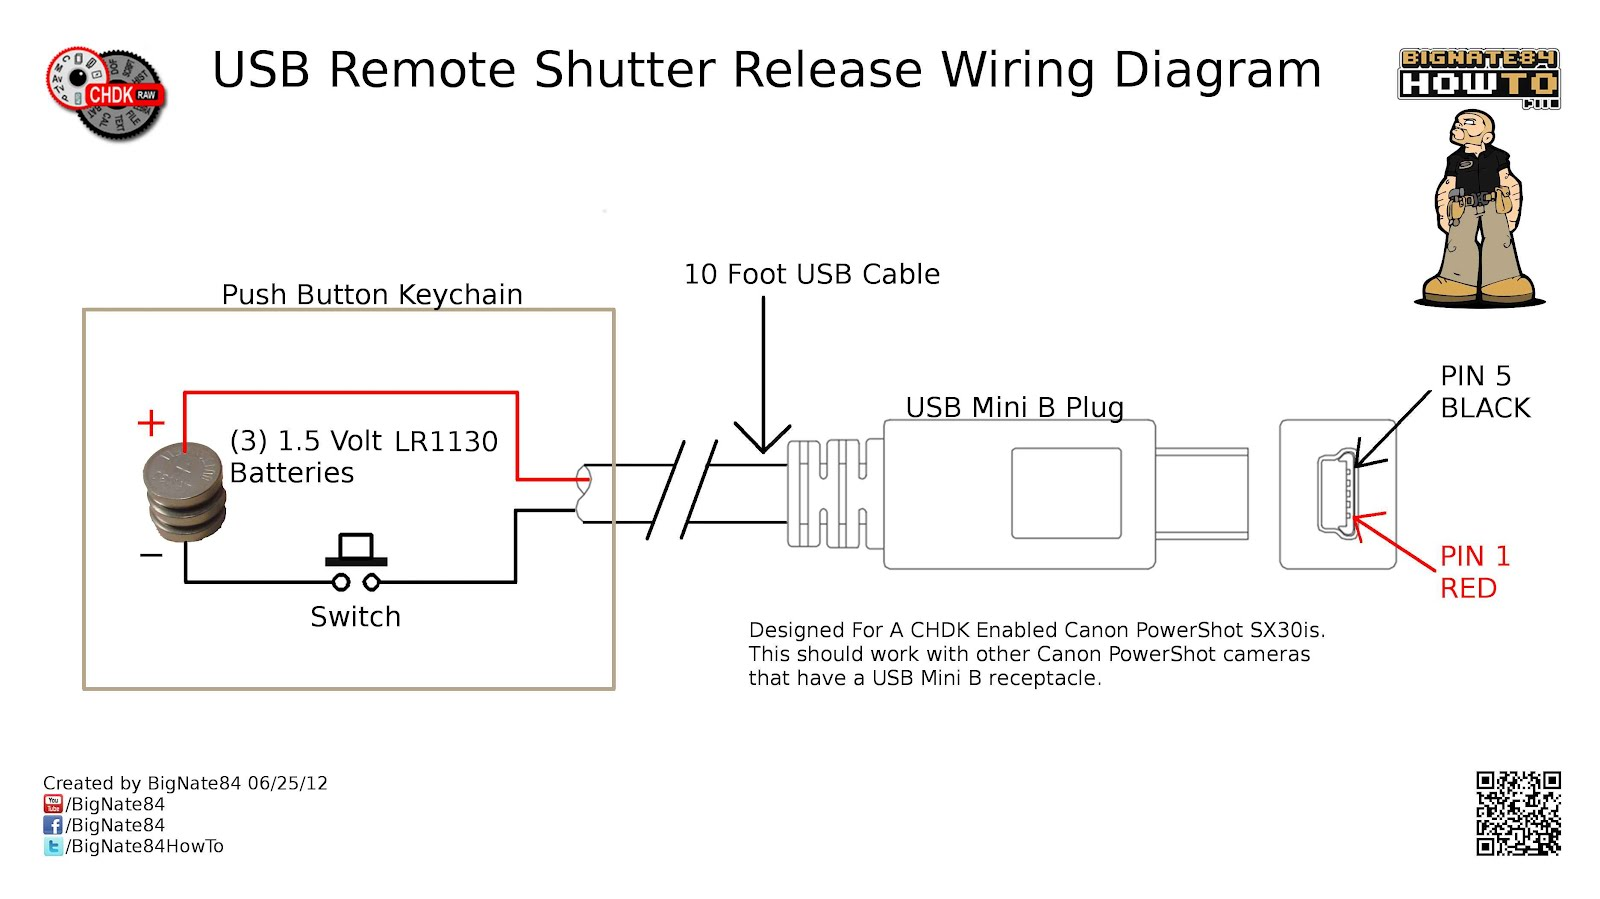 latest?cb=20120809225626 image 0001 usb remote shutter wiring diagram 1 jpeg chdk wiki micro usb plug wiring diagram at reclaimingppi.co